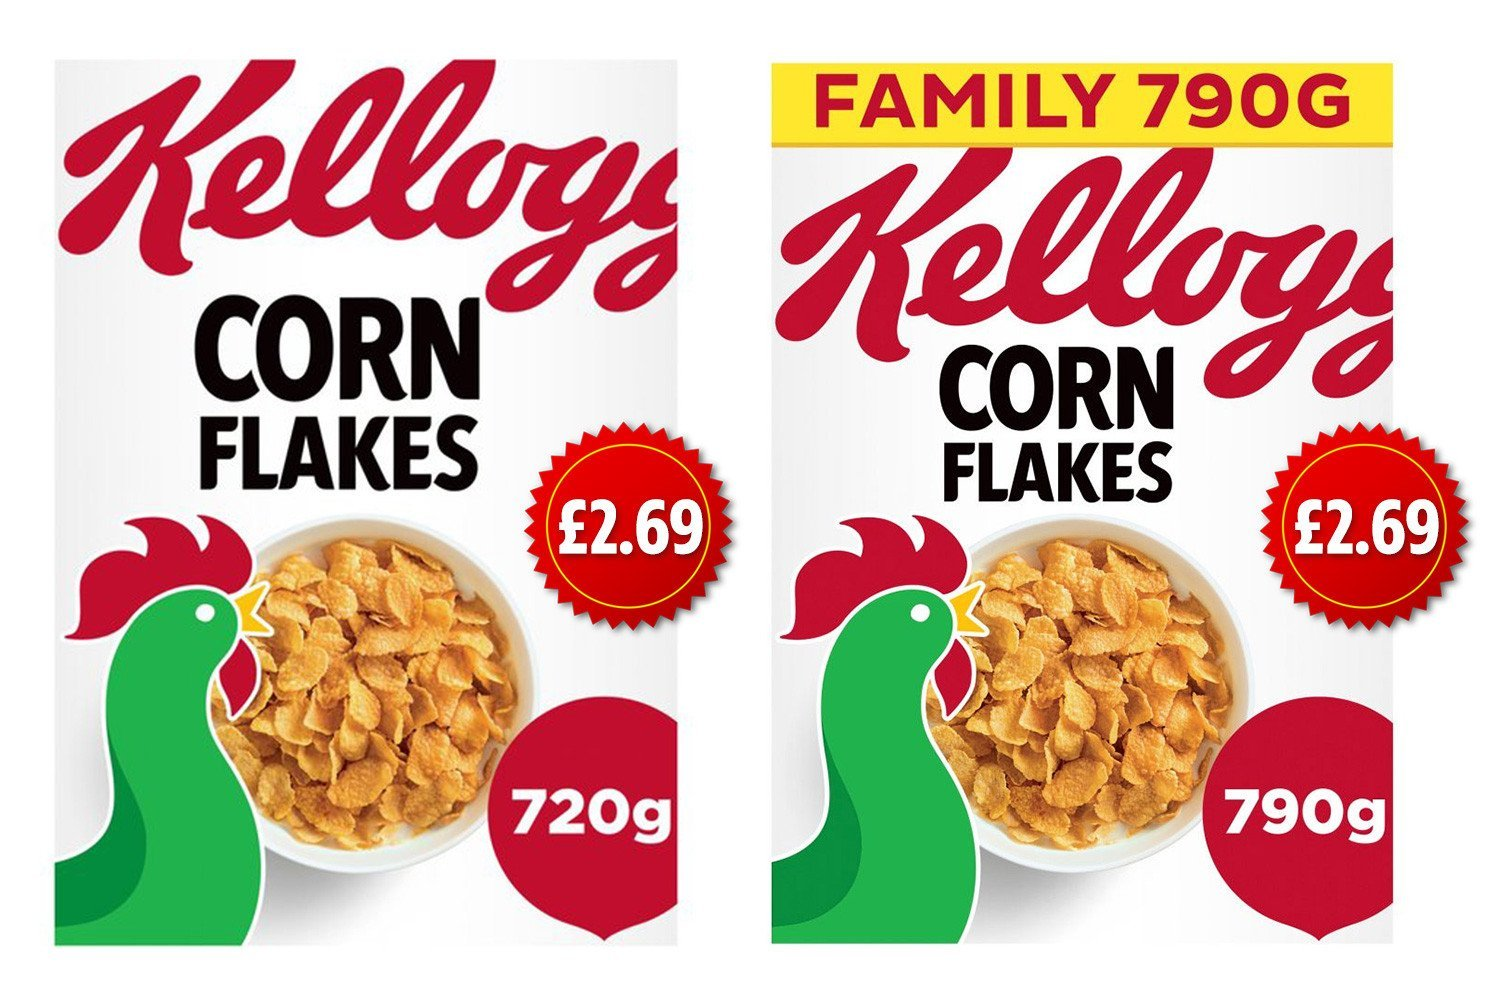 Kellogg's cuts size of cereal boxes but the price stays the same